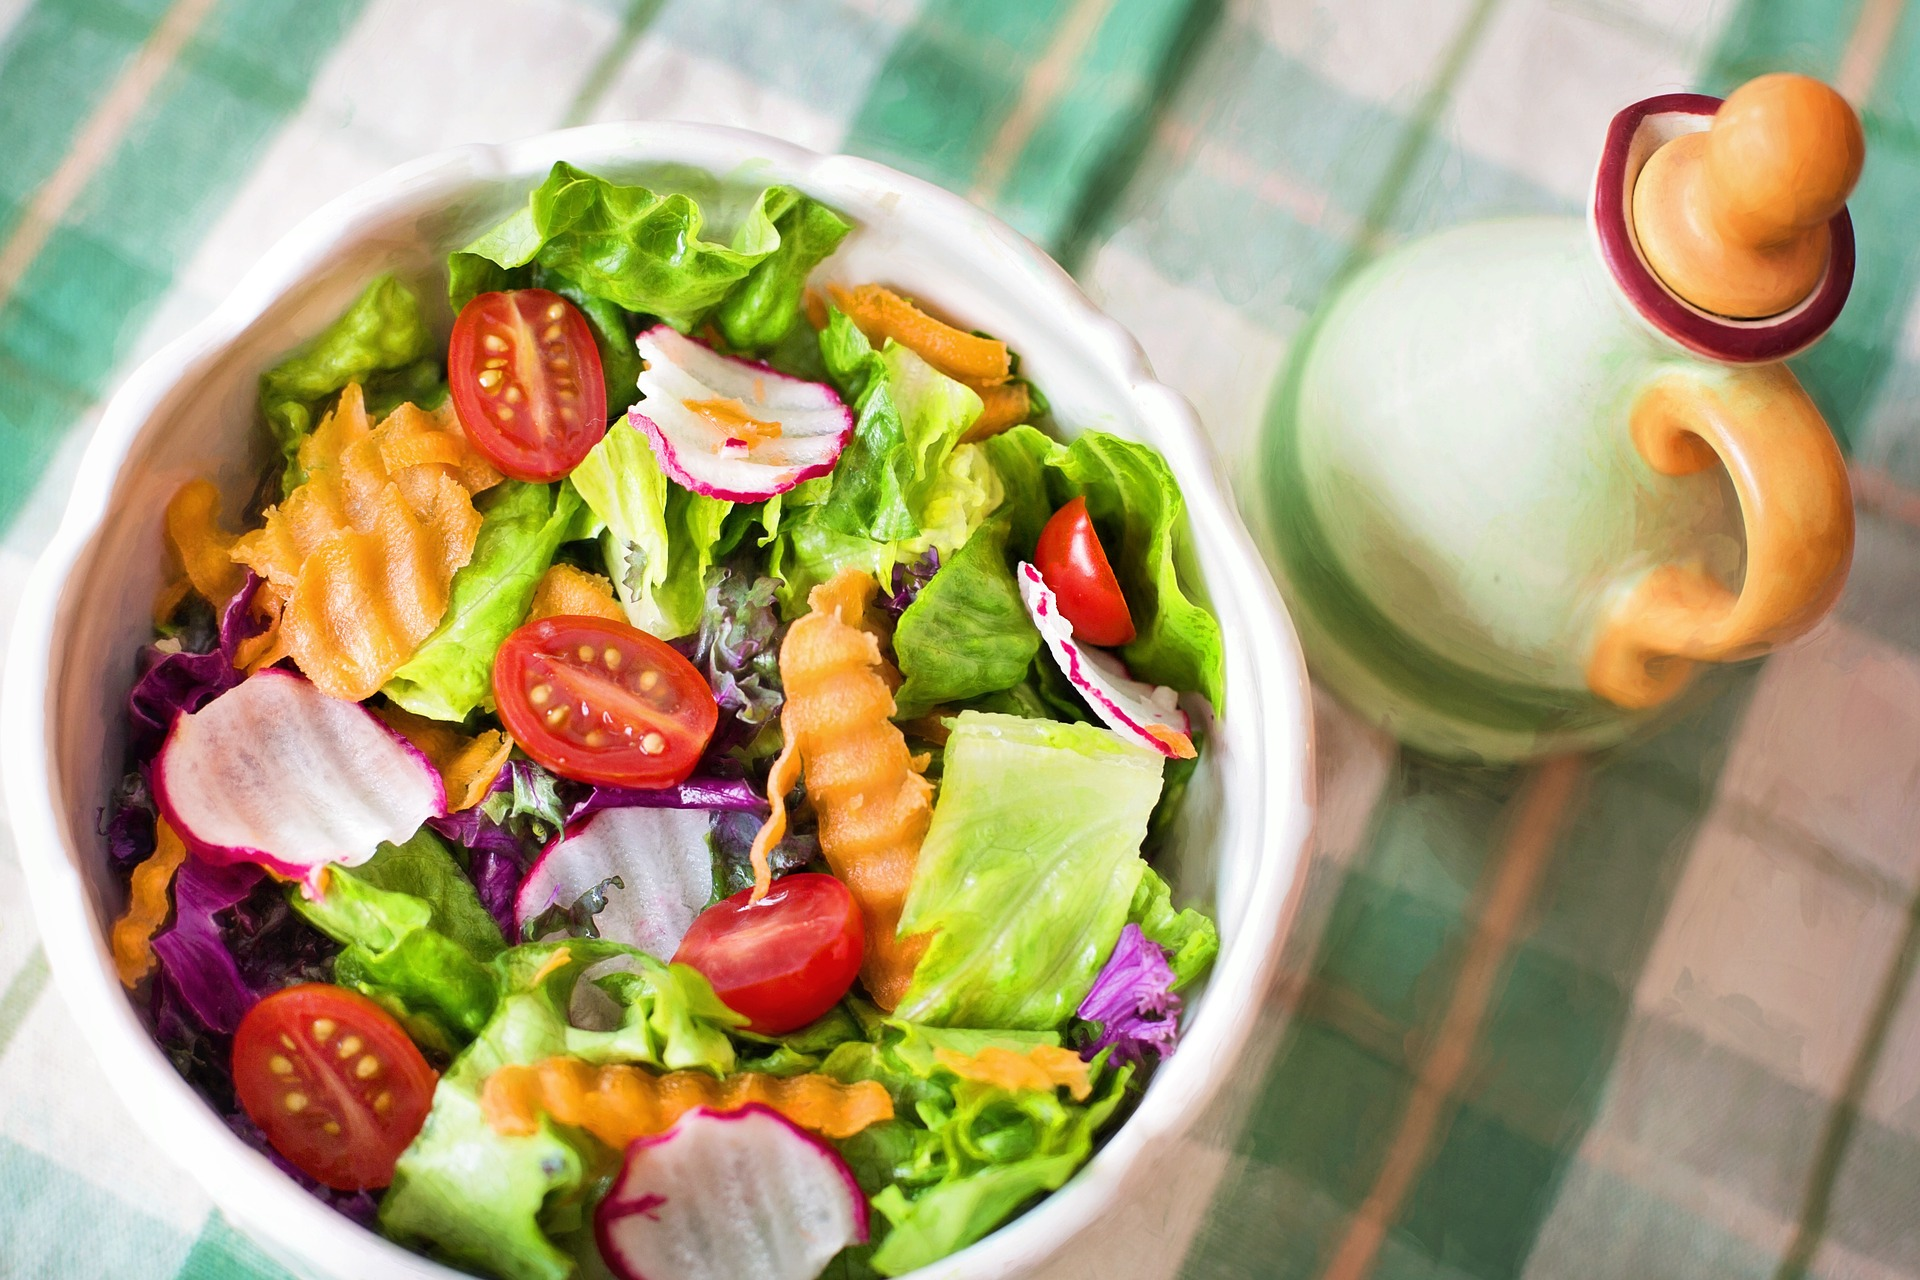 Healthy eating for improved productivity: meal-time tips for foodie freelancers